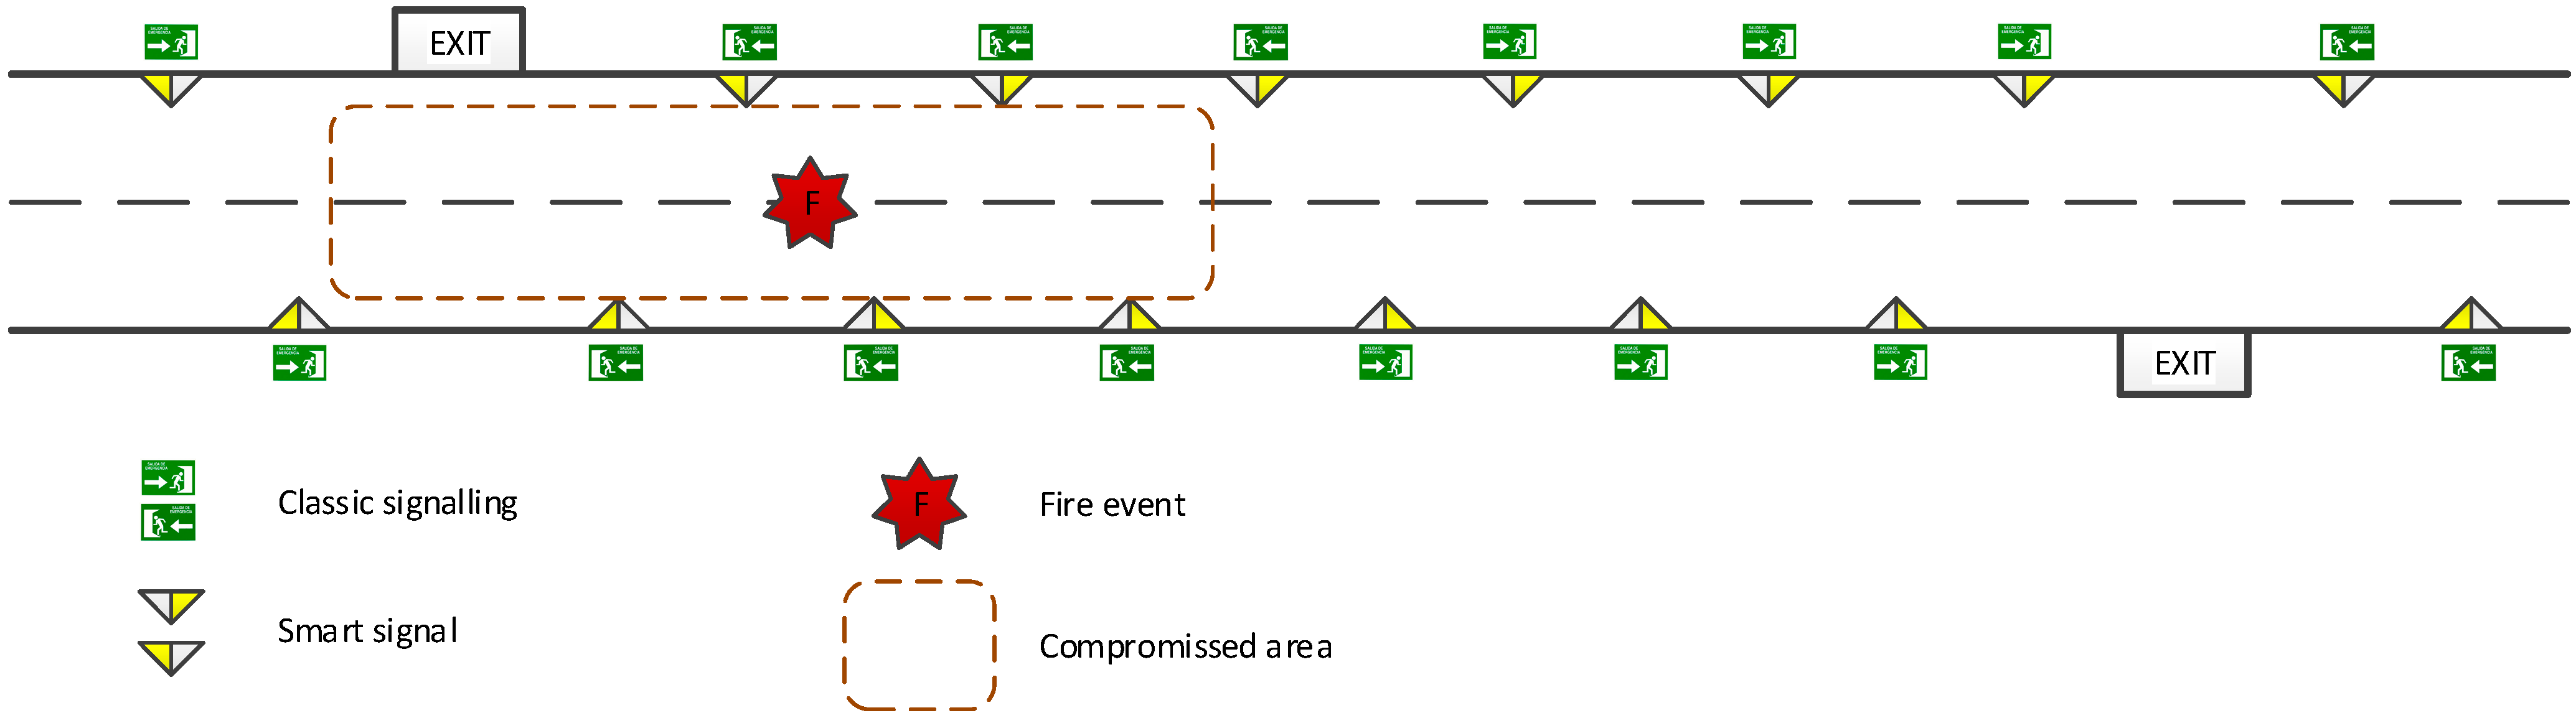 Sensors Free Full Text Managing Emergency Situations In The Rtcc Panel Wiring Diagram 15 14370 G003 1024